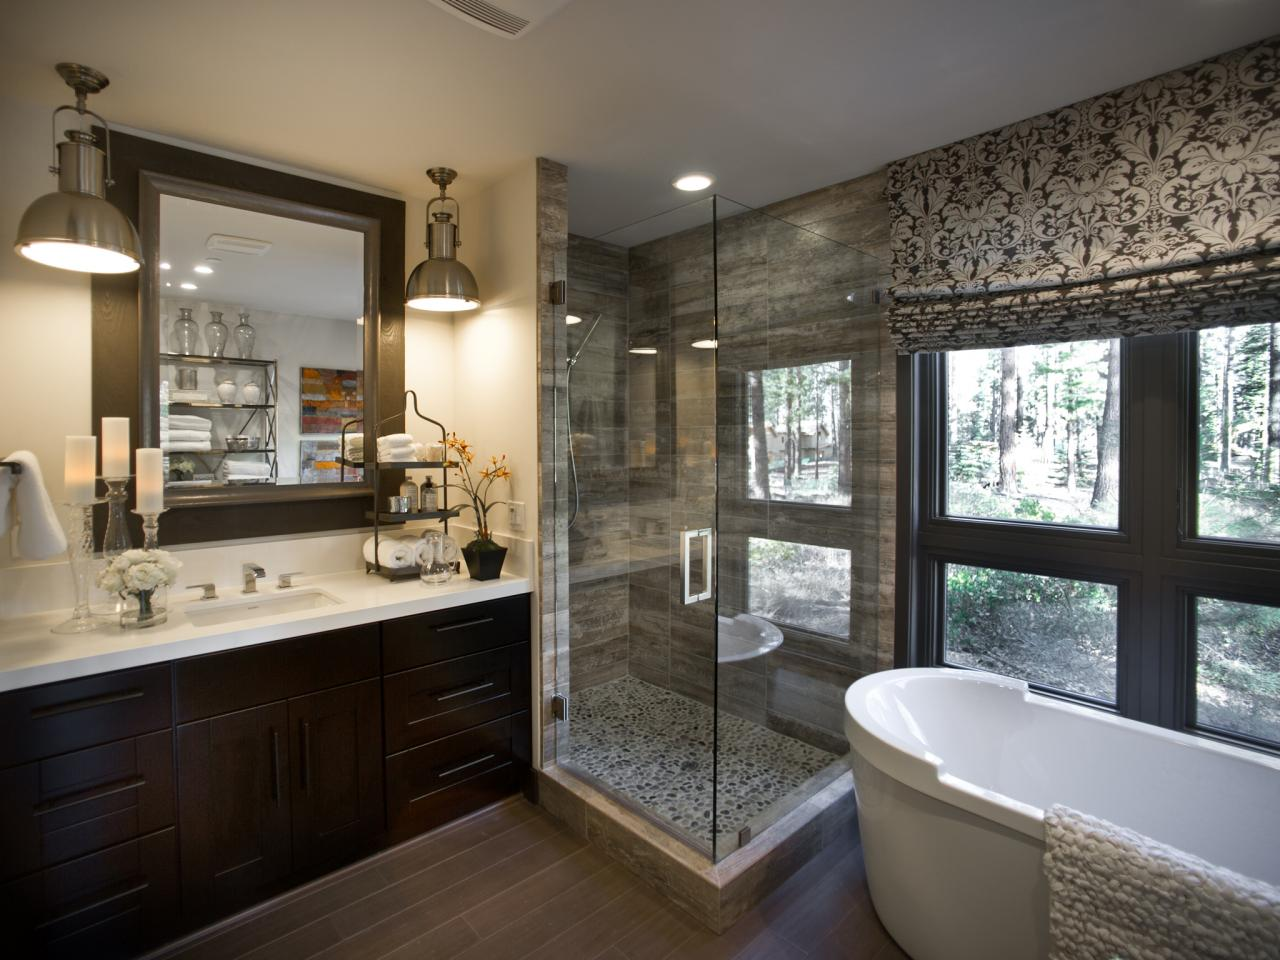 Hgtv dream home 2014 master bathroom pictures and video Home bathroom designs